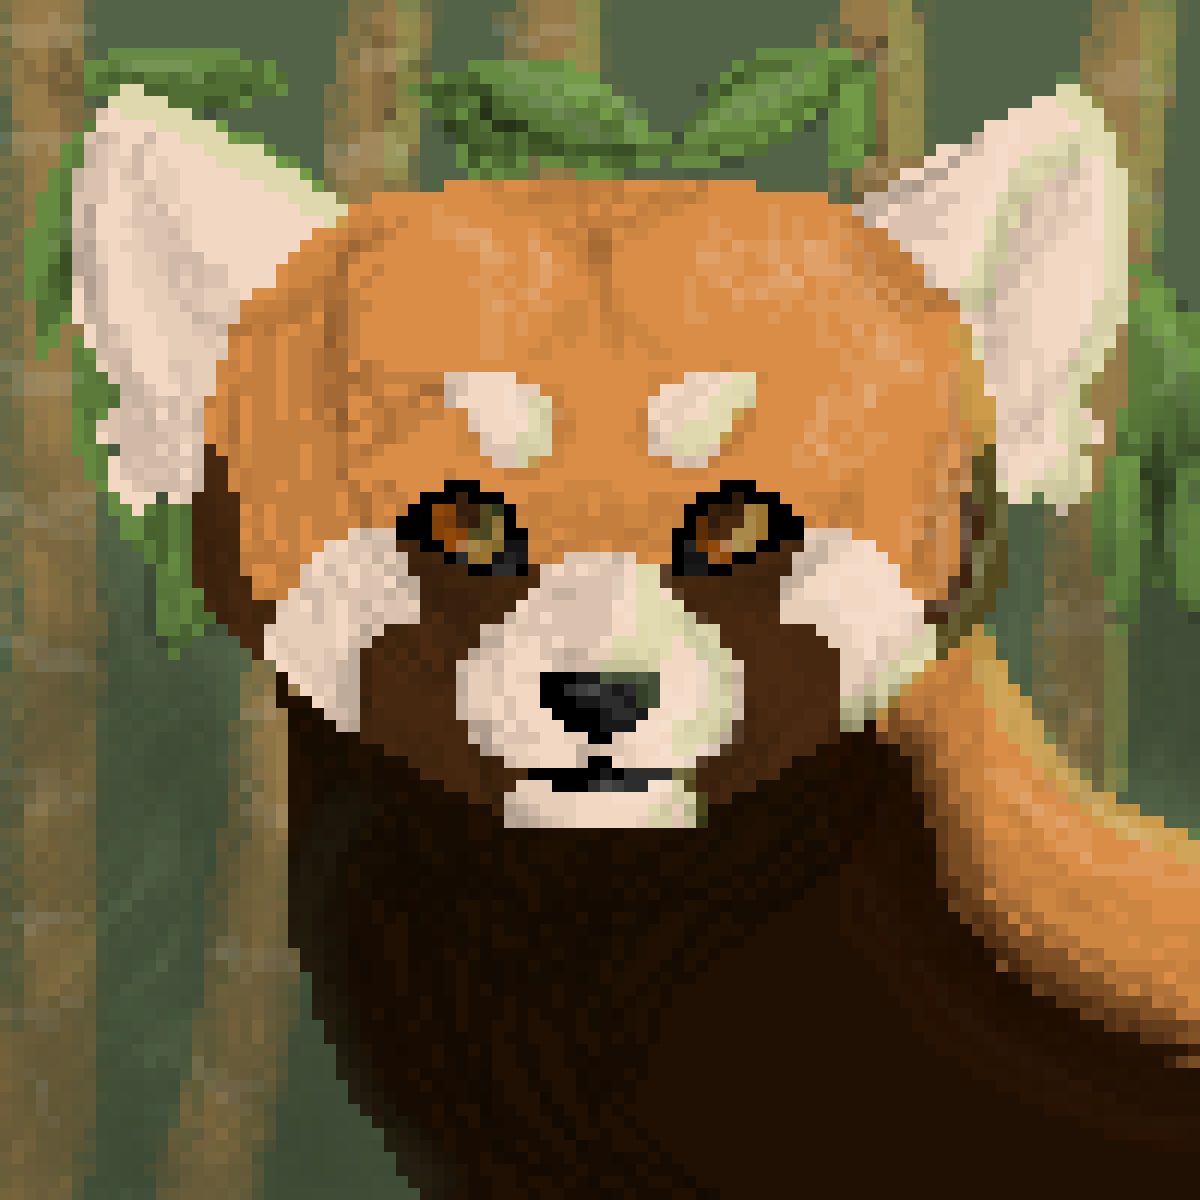 Red Panda by ScatteredLeaves